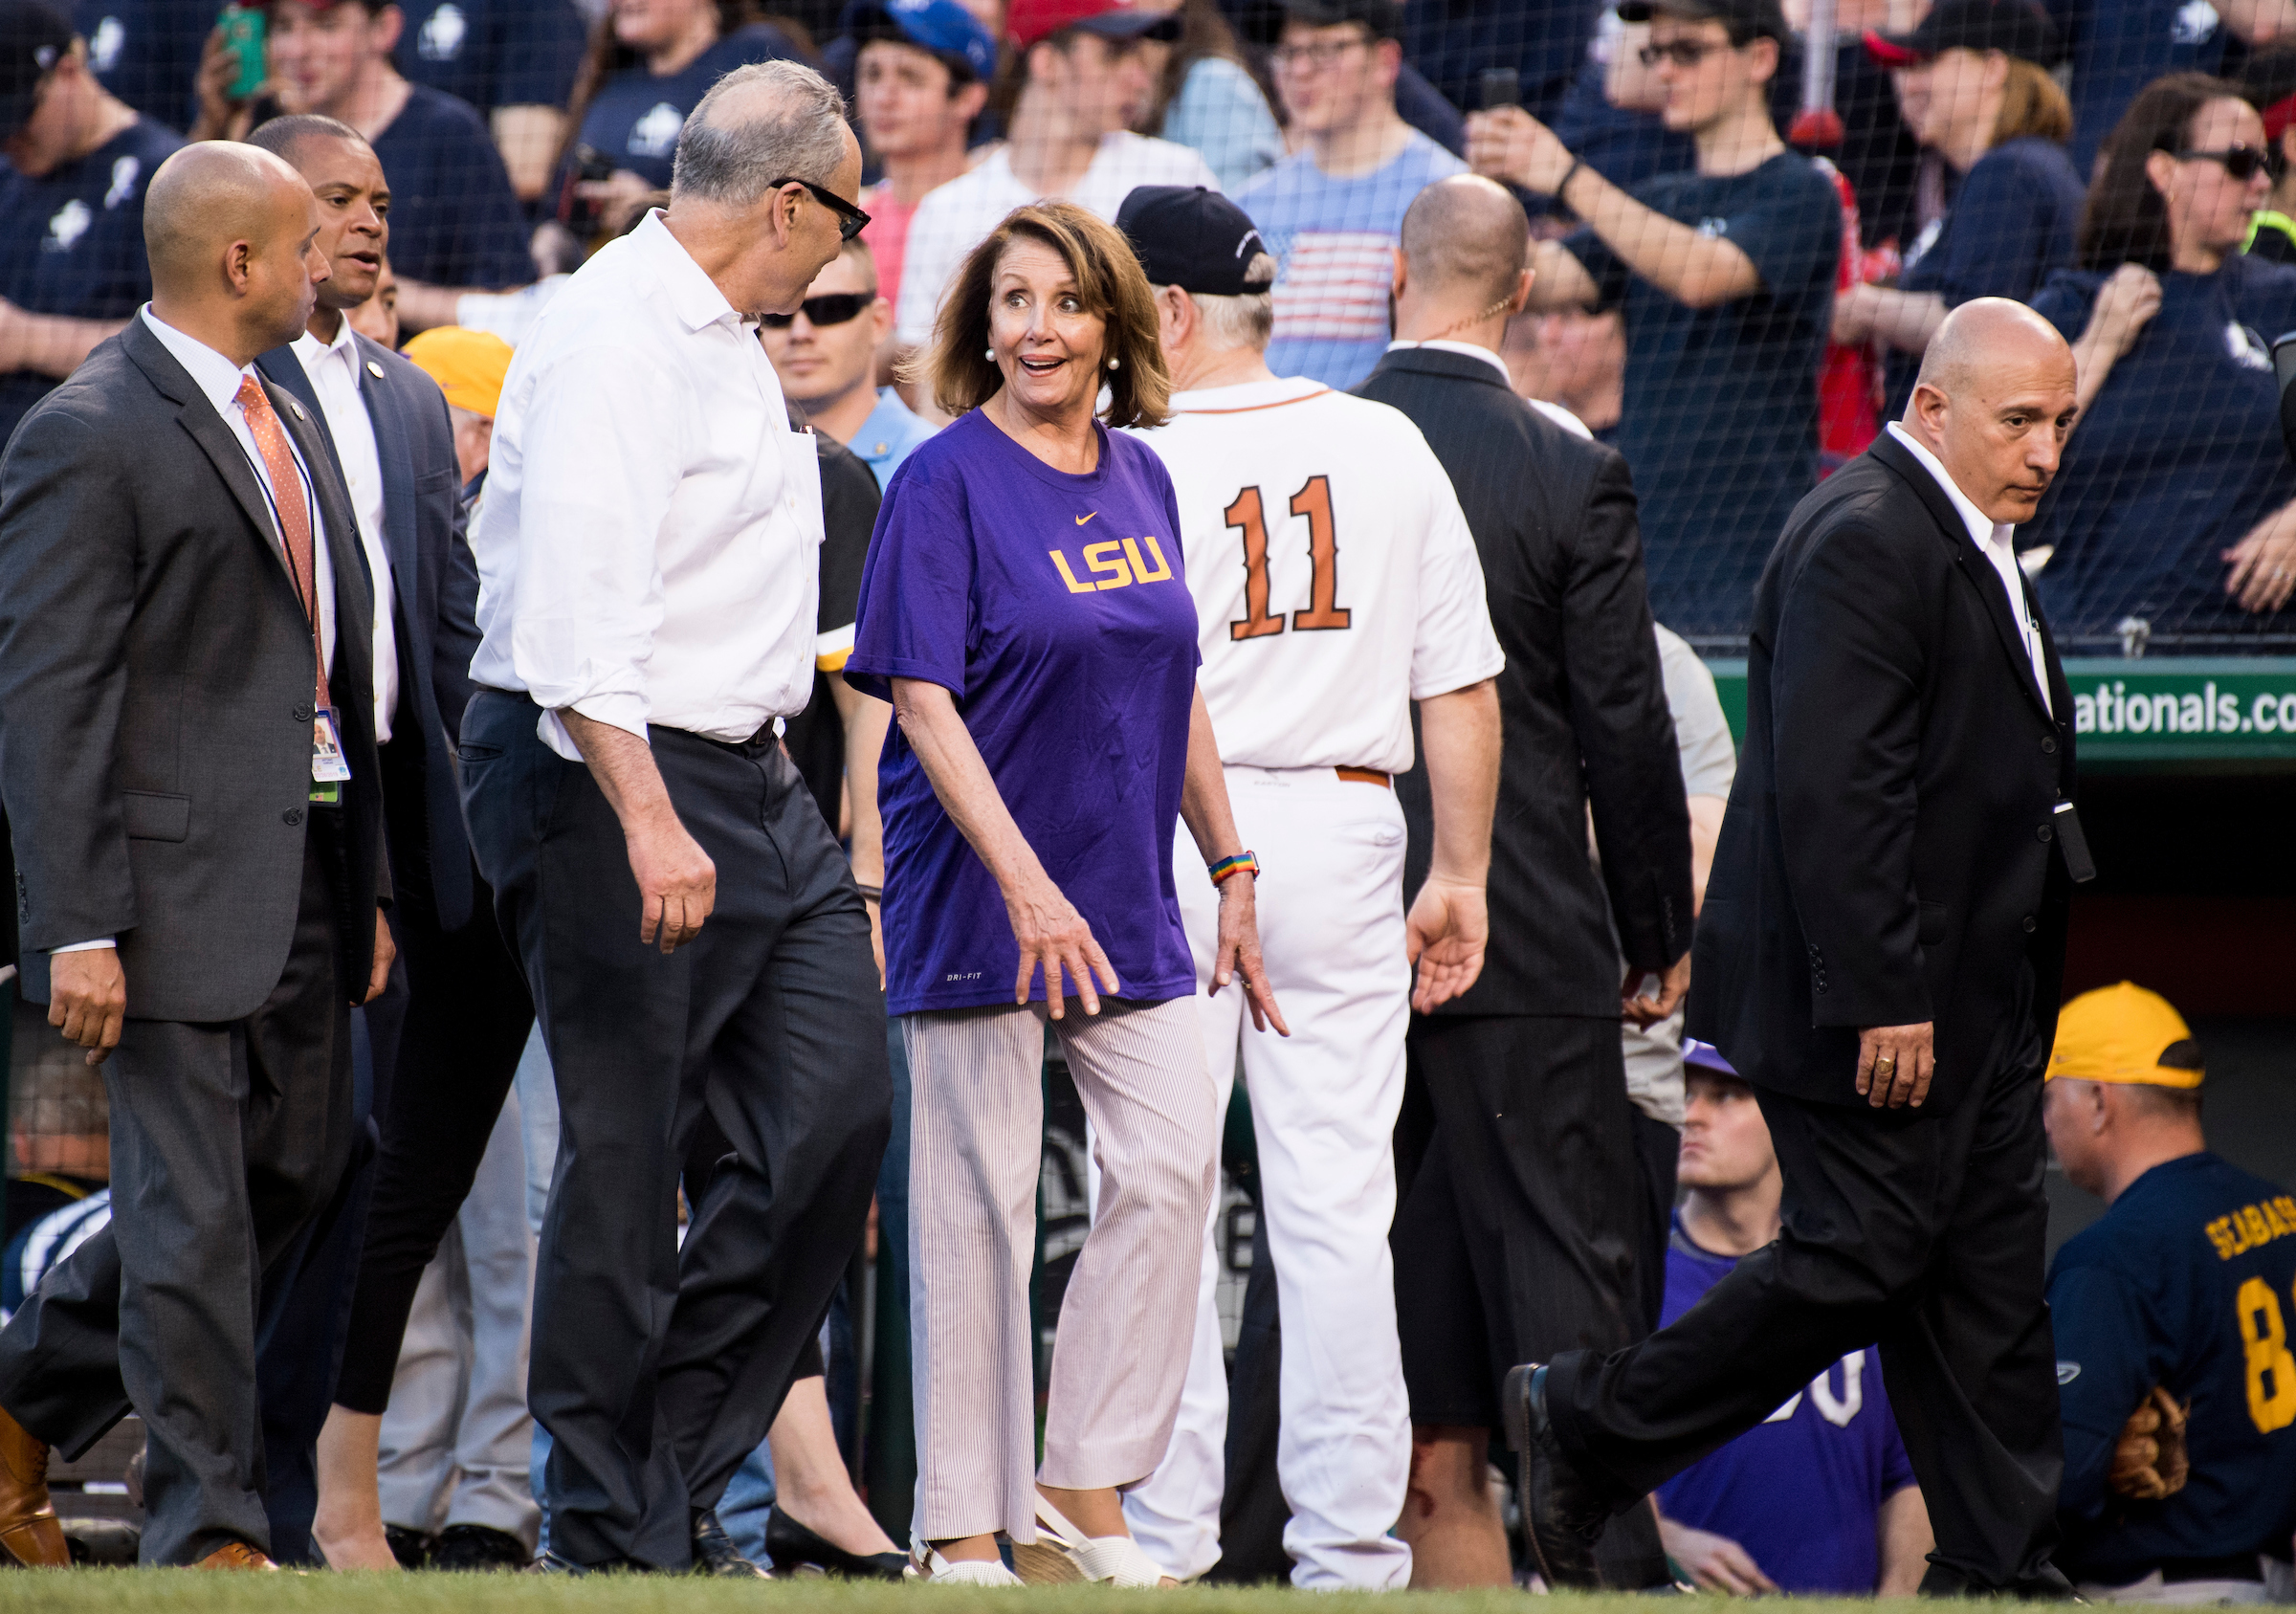 Senate Minority Leader Chuck Schumer, D-N.Y., and House Minority Leader Nancy Pelosi, D-Calif., walk with their Capitol Police security detail on the field before the start of the game. (Bill Clark/CQ Roll Call)